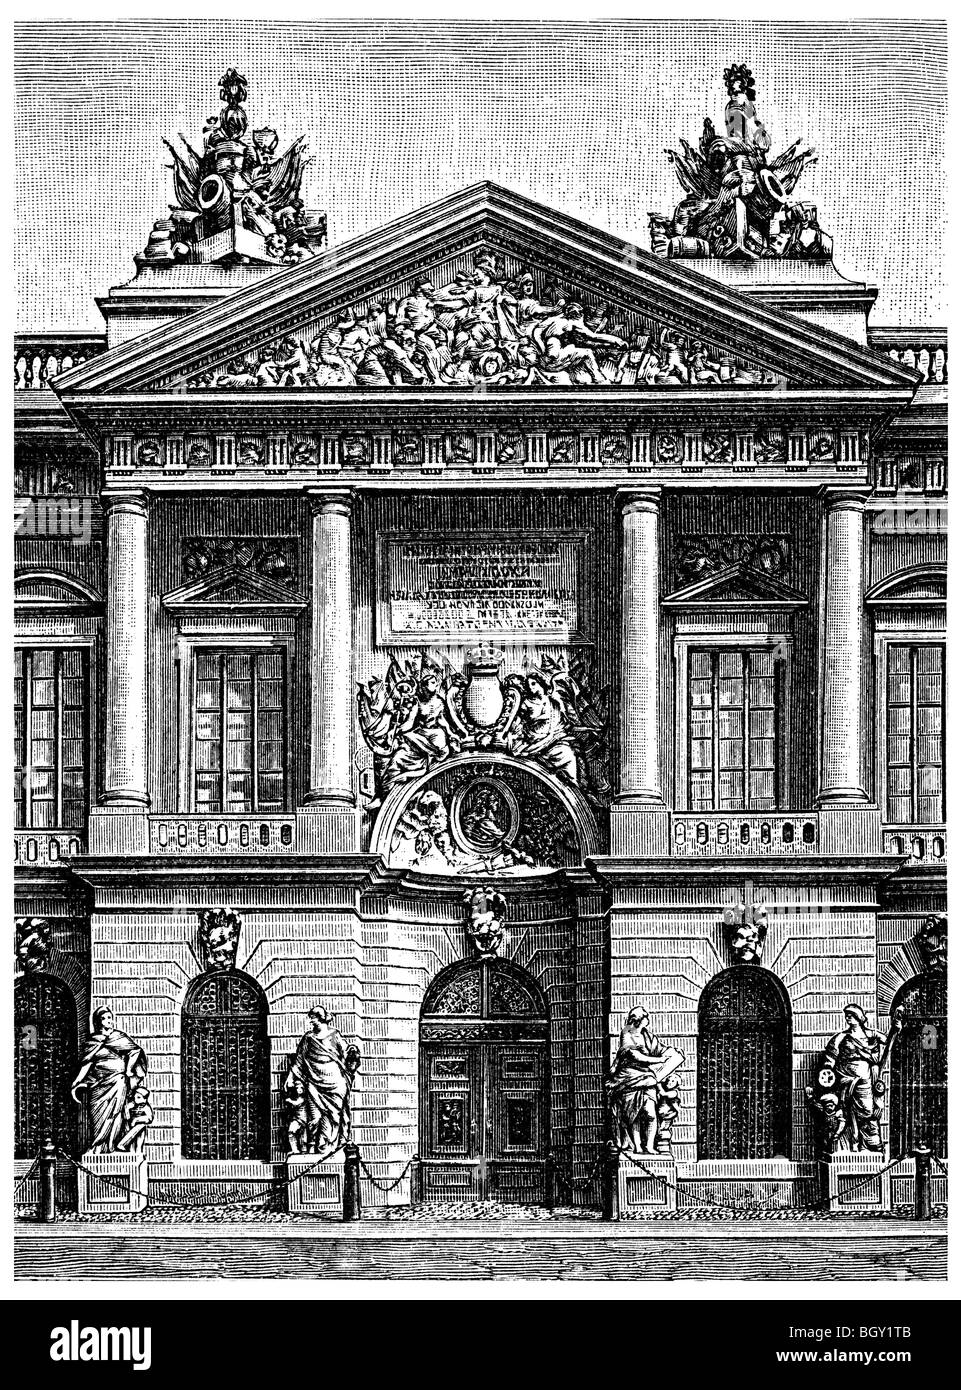 former Zeughaus, armoury in Berlin - Stock Image